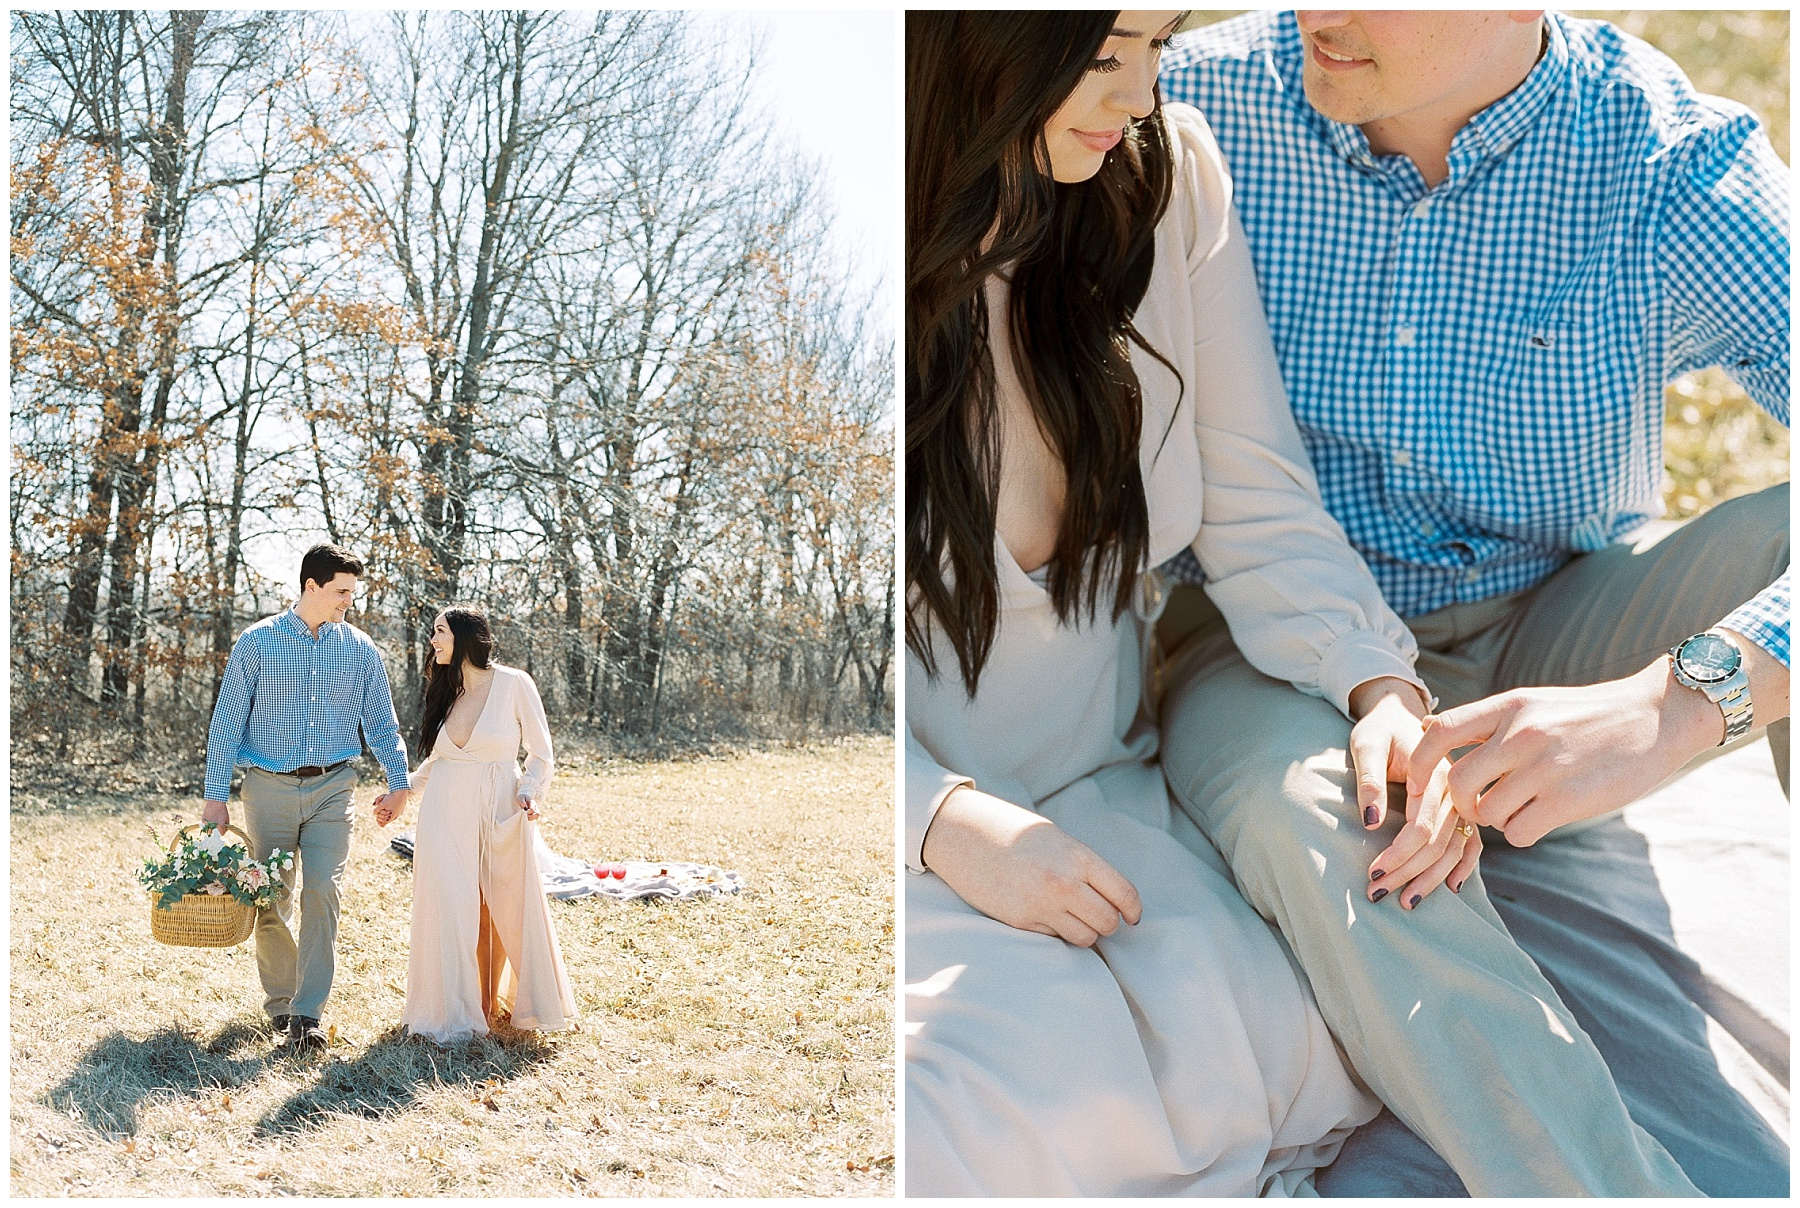 Late Fall Farm-to-table Inspired Brunch Picnic Engagement Session During Wedding Weekend by Kelsi Kliethermes Photography Best Missouri and Maui Wedding Photographer_0015.jpg